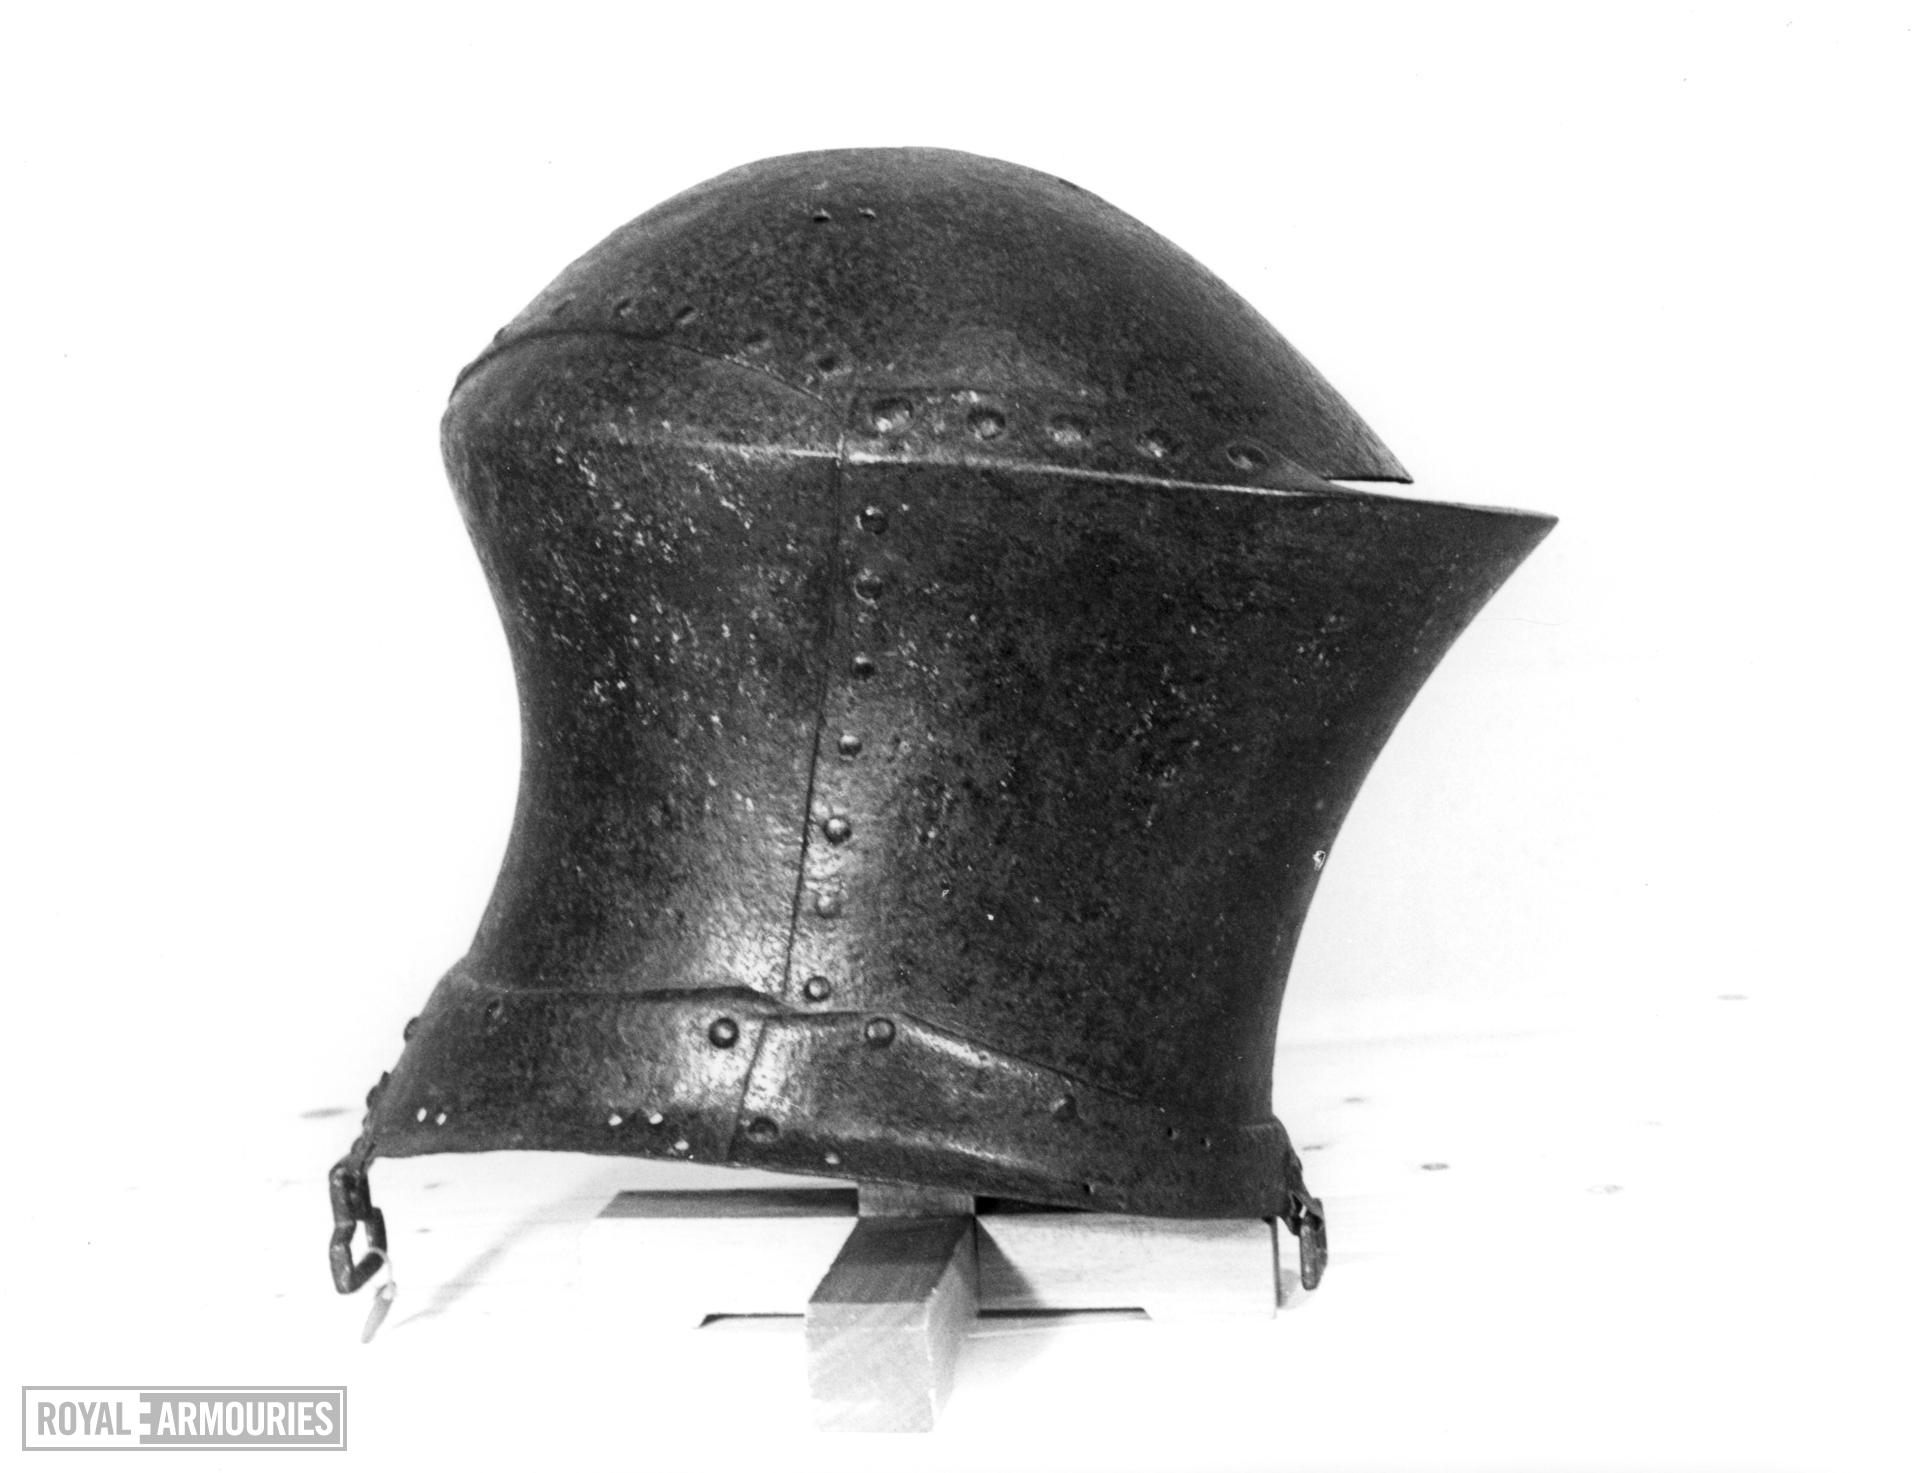 Jousting helm From the tomb of Sir William Barendyne, St Peter's Church, Great Haseley, Oxfordshire.